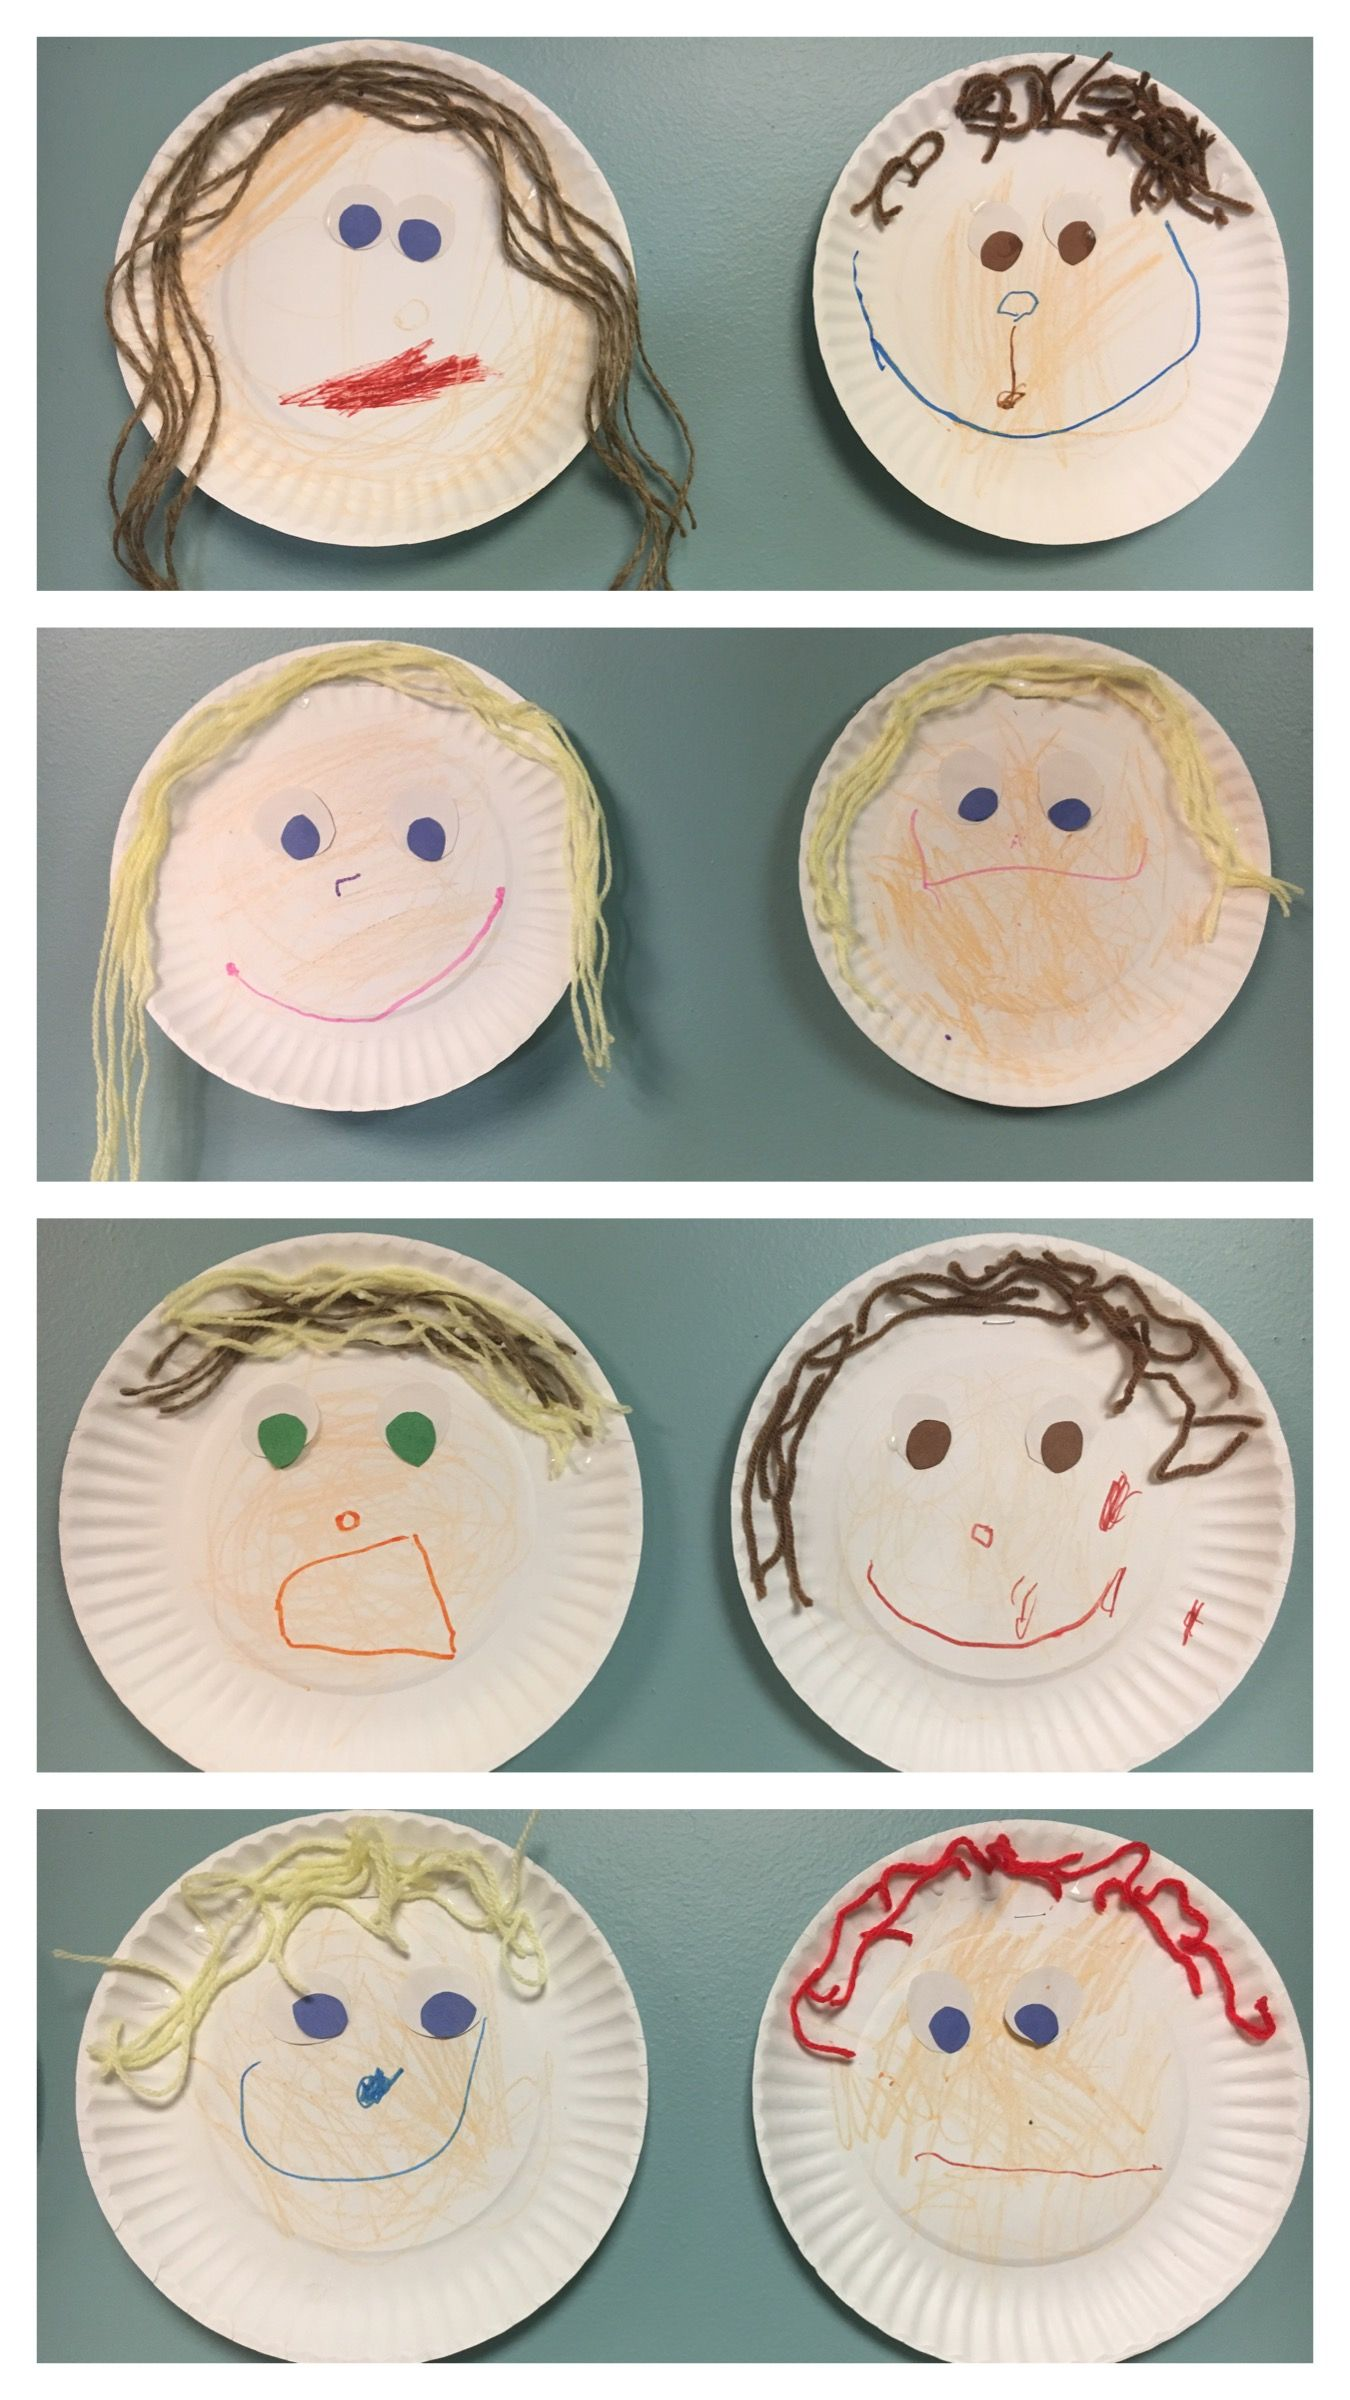 Self Portrait Paper Plate Art Pre K All About Me Week We Made These During All About Me Week